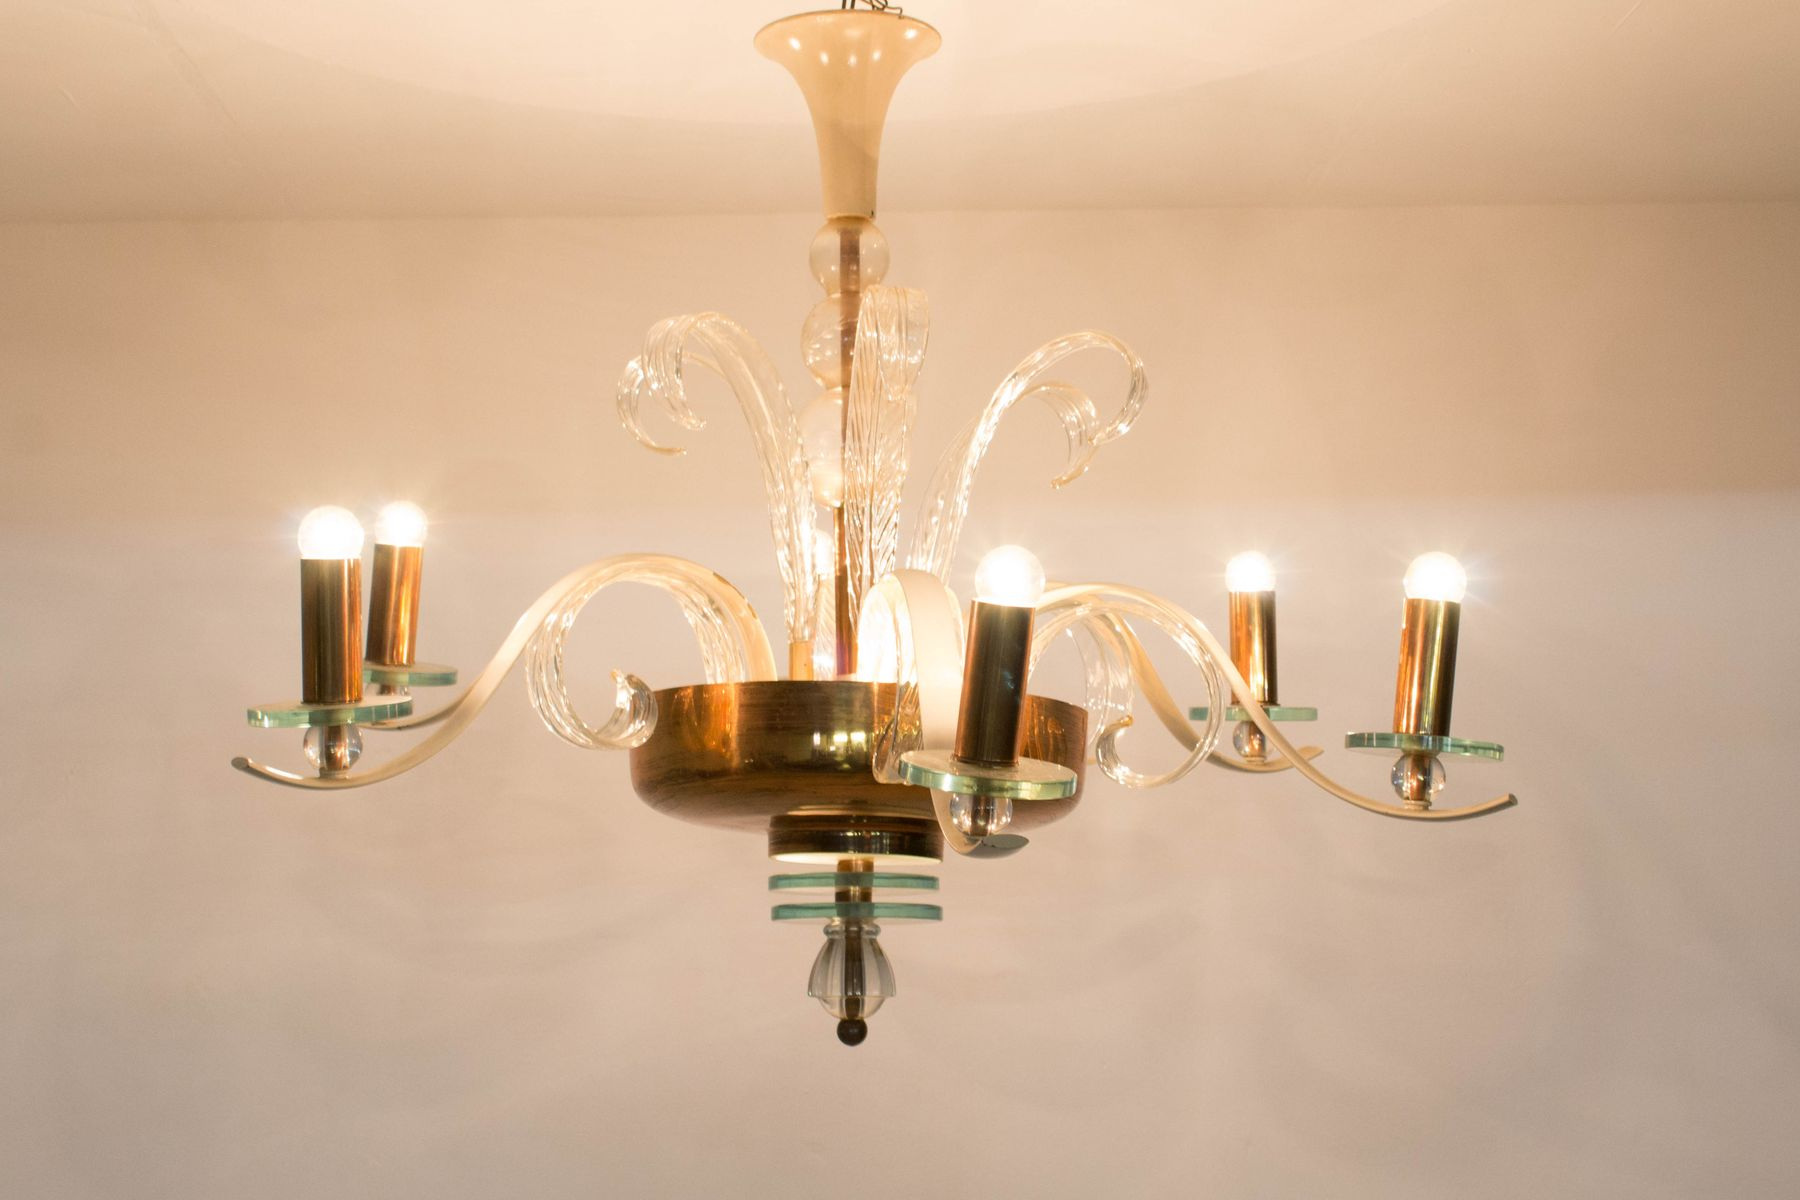 Italian Murano Glass Chandelier, 1940s for sale at Pamono